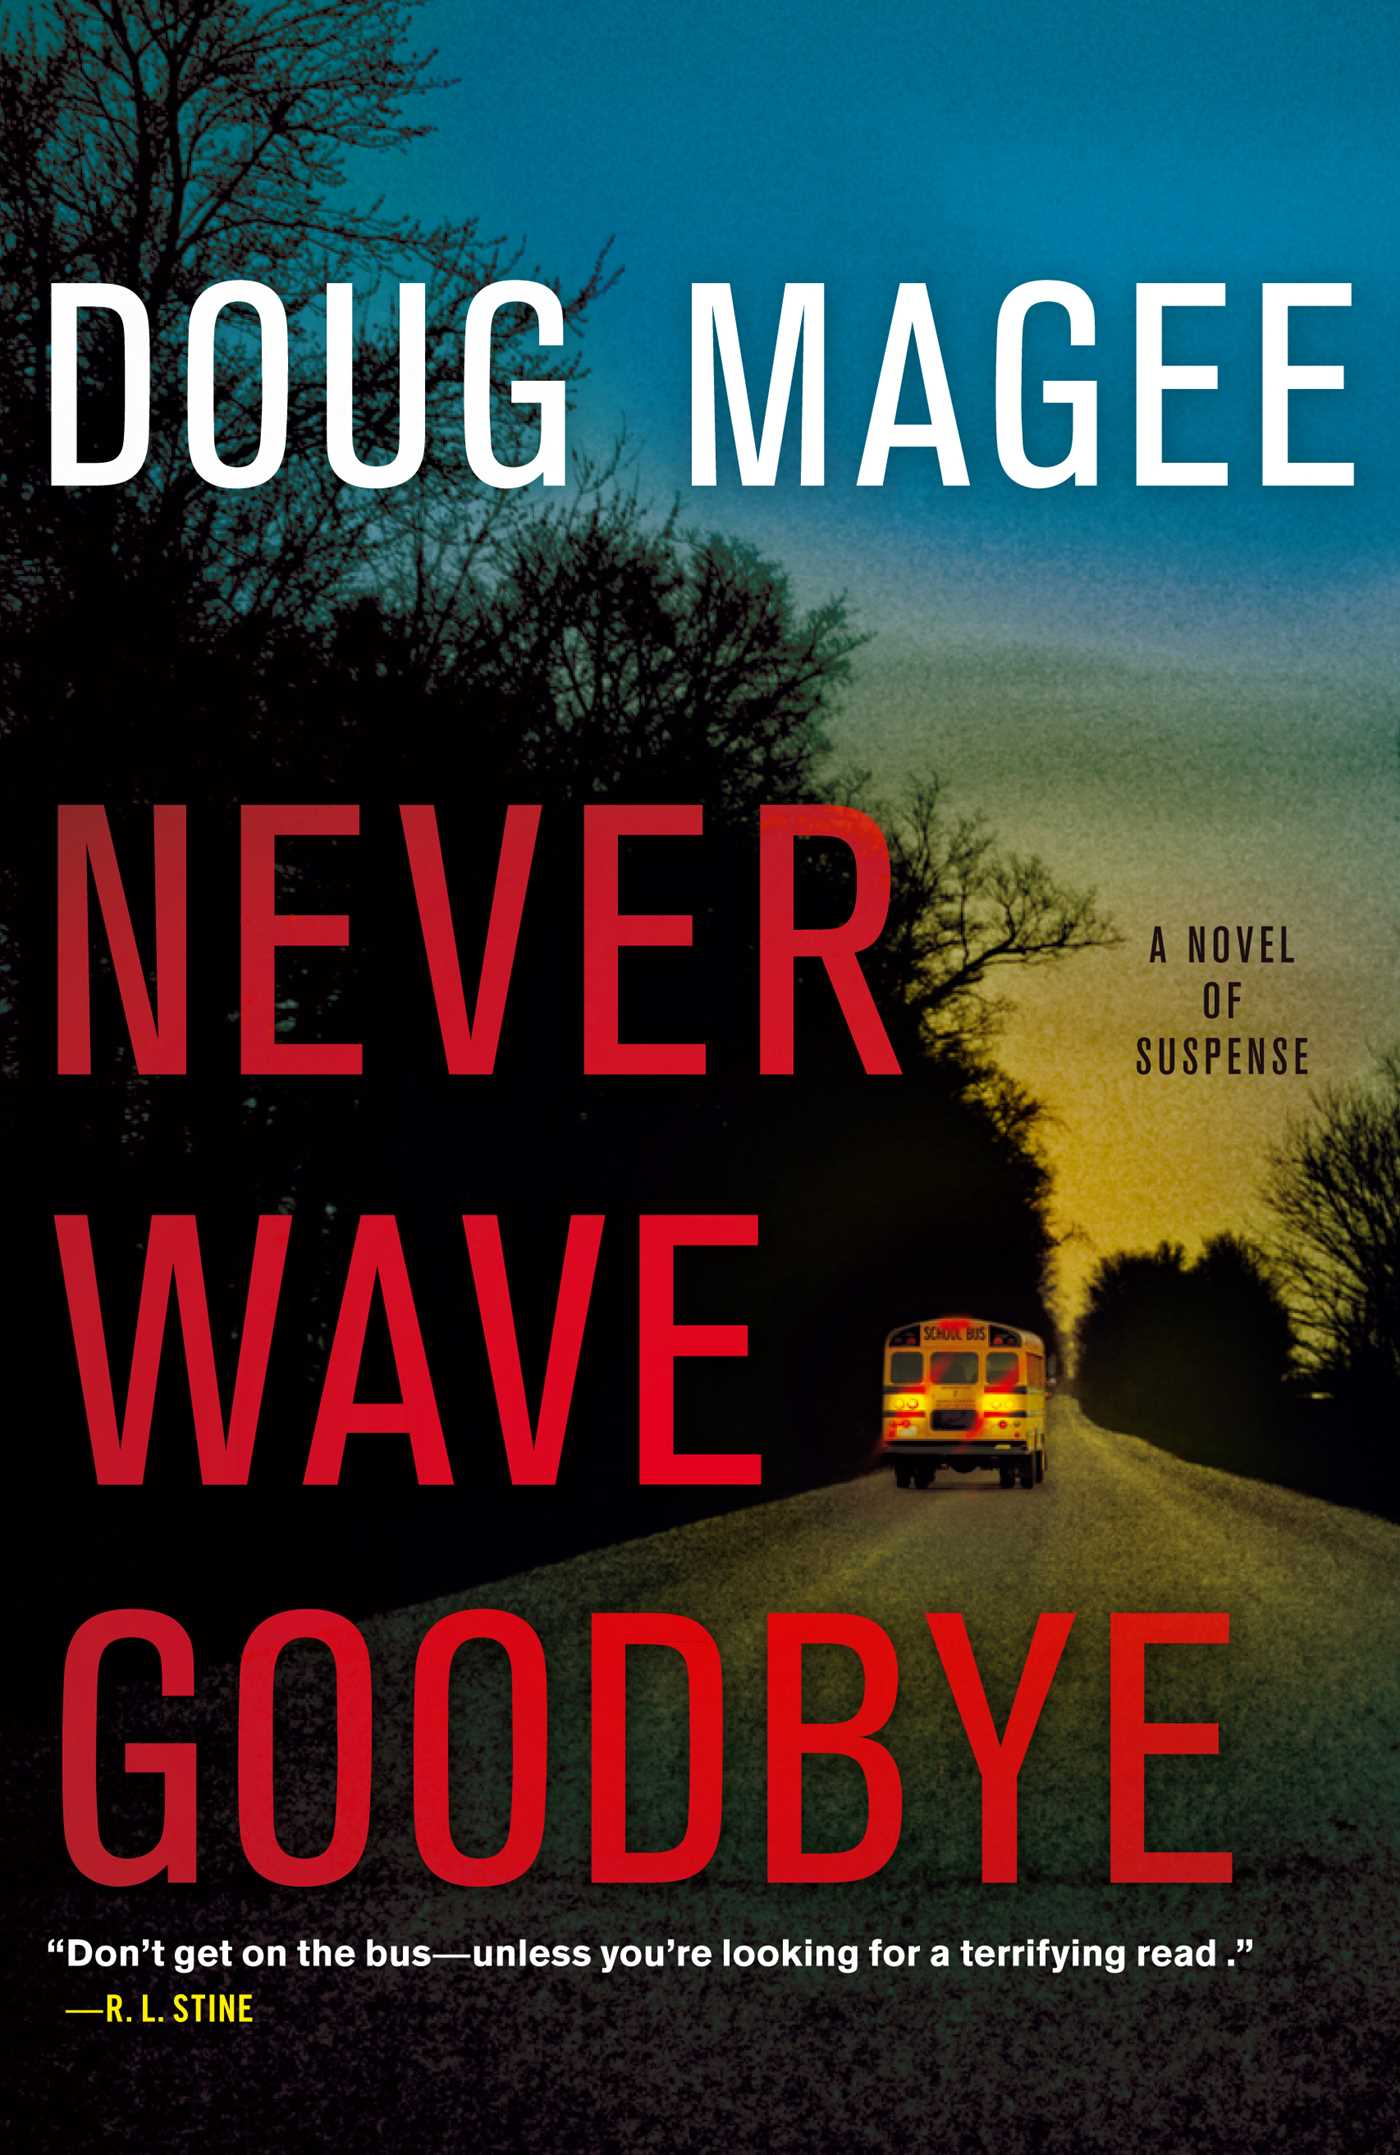 Never-wave-goodbye-9781439160091_hr